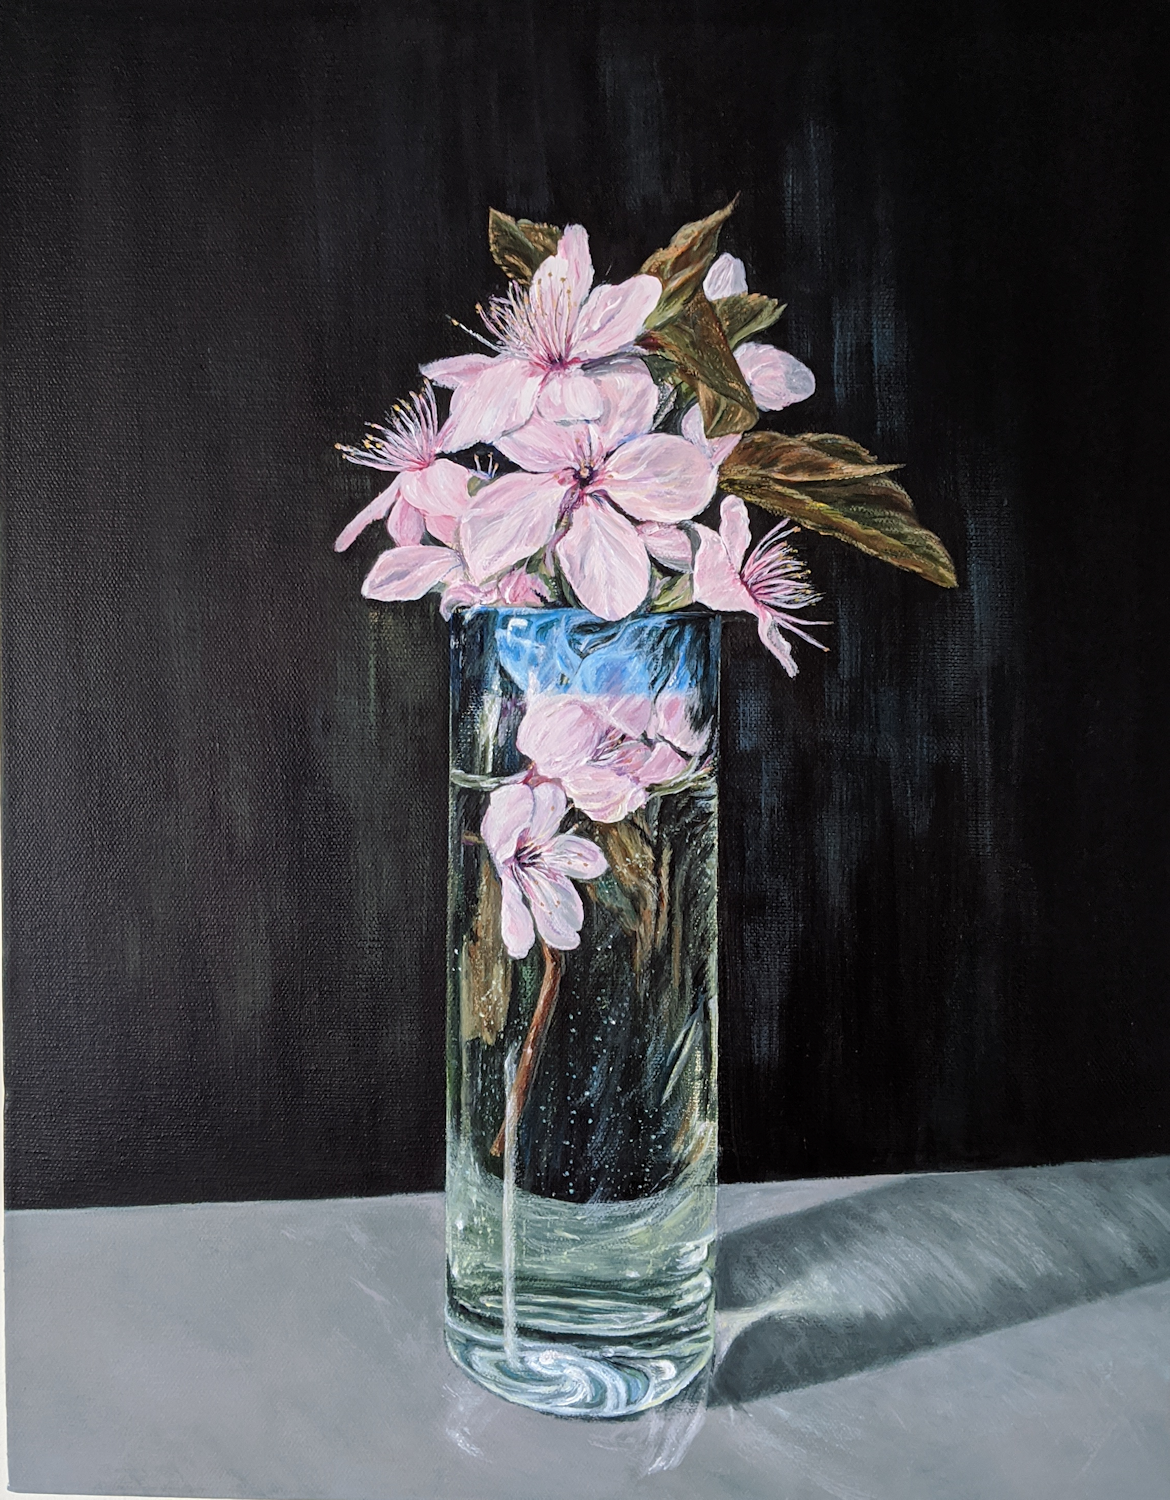 Spring Blossoms - acrylics on canvas